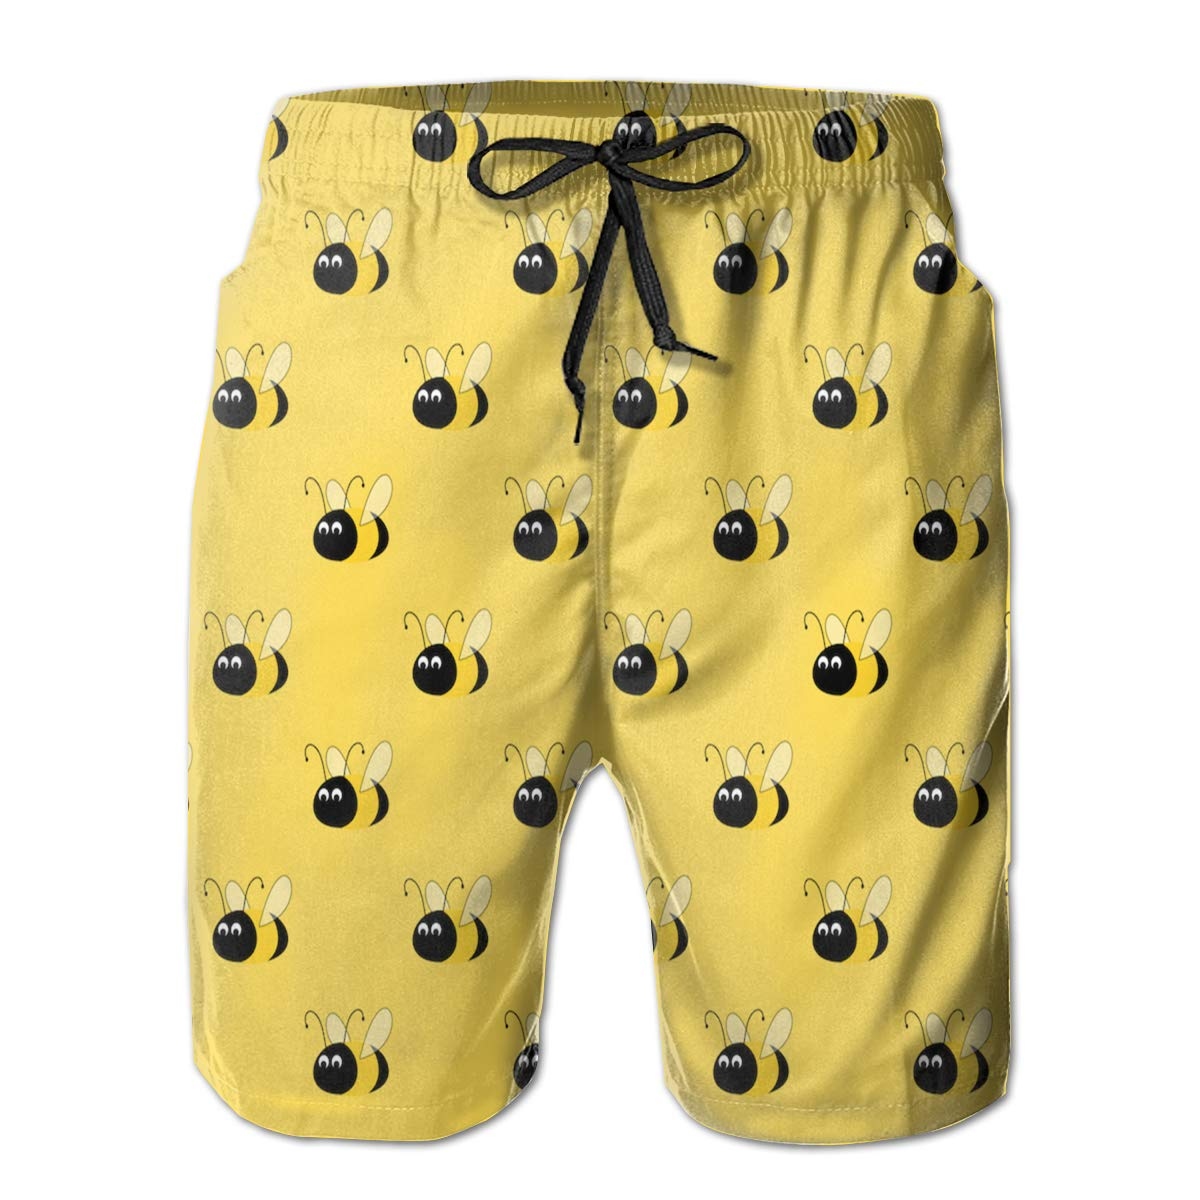 JF-X Bee Mens Summer Beach Surf Board Shorts Quick Dry Swimming Trunks Casual Loose Sleep Short Pants